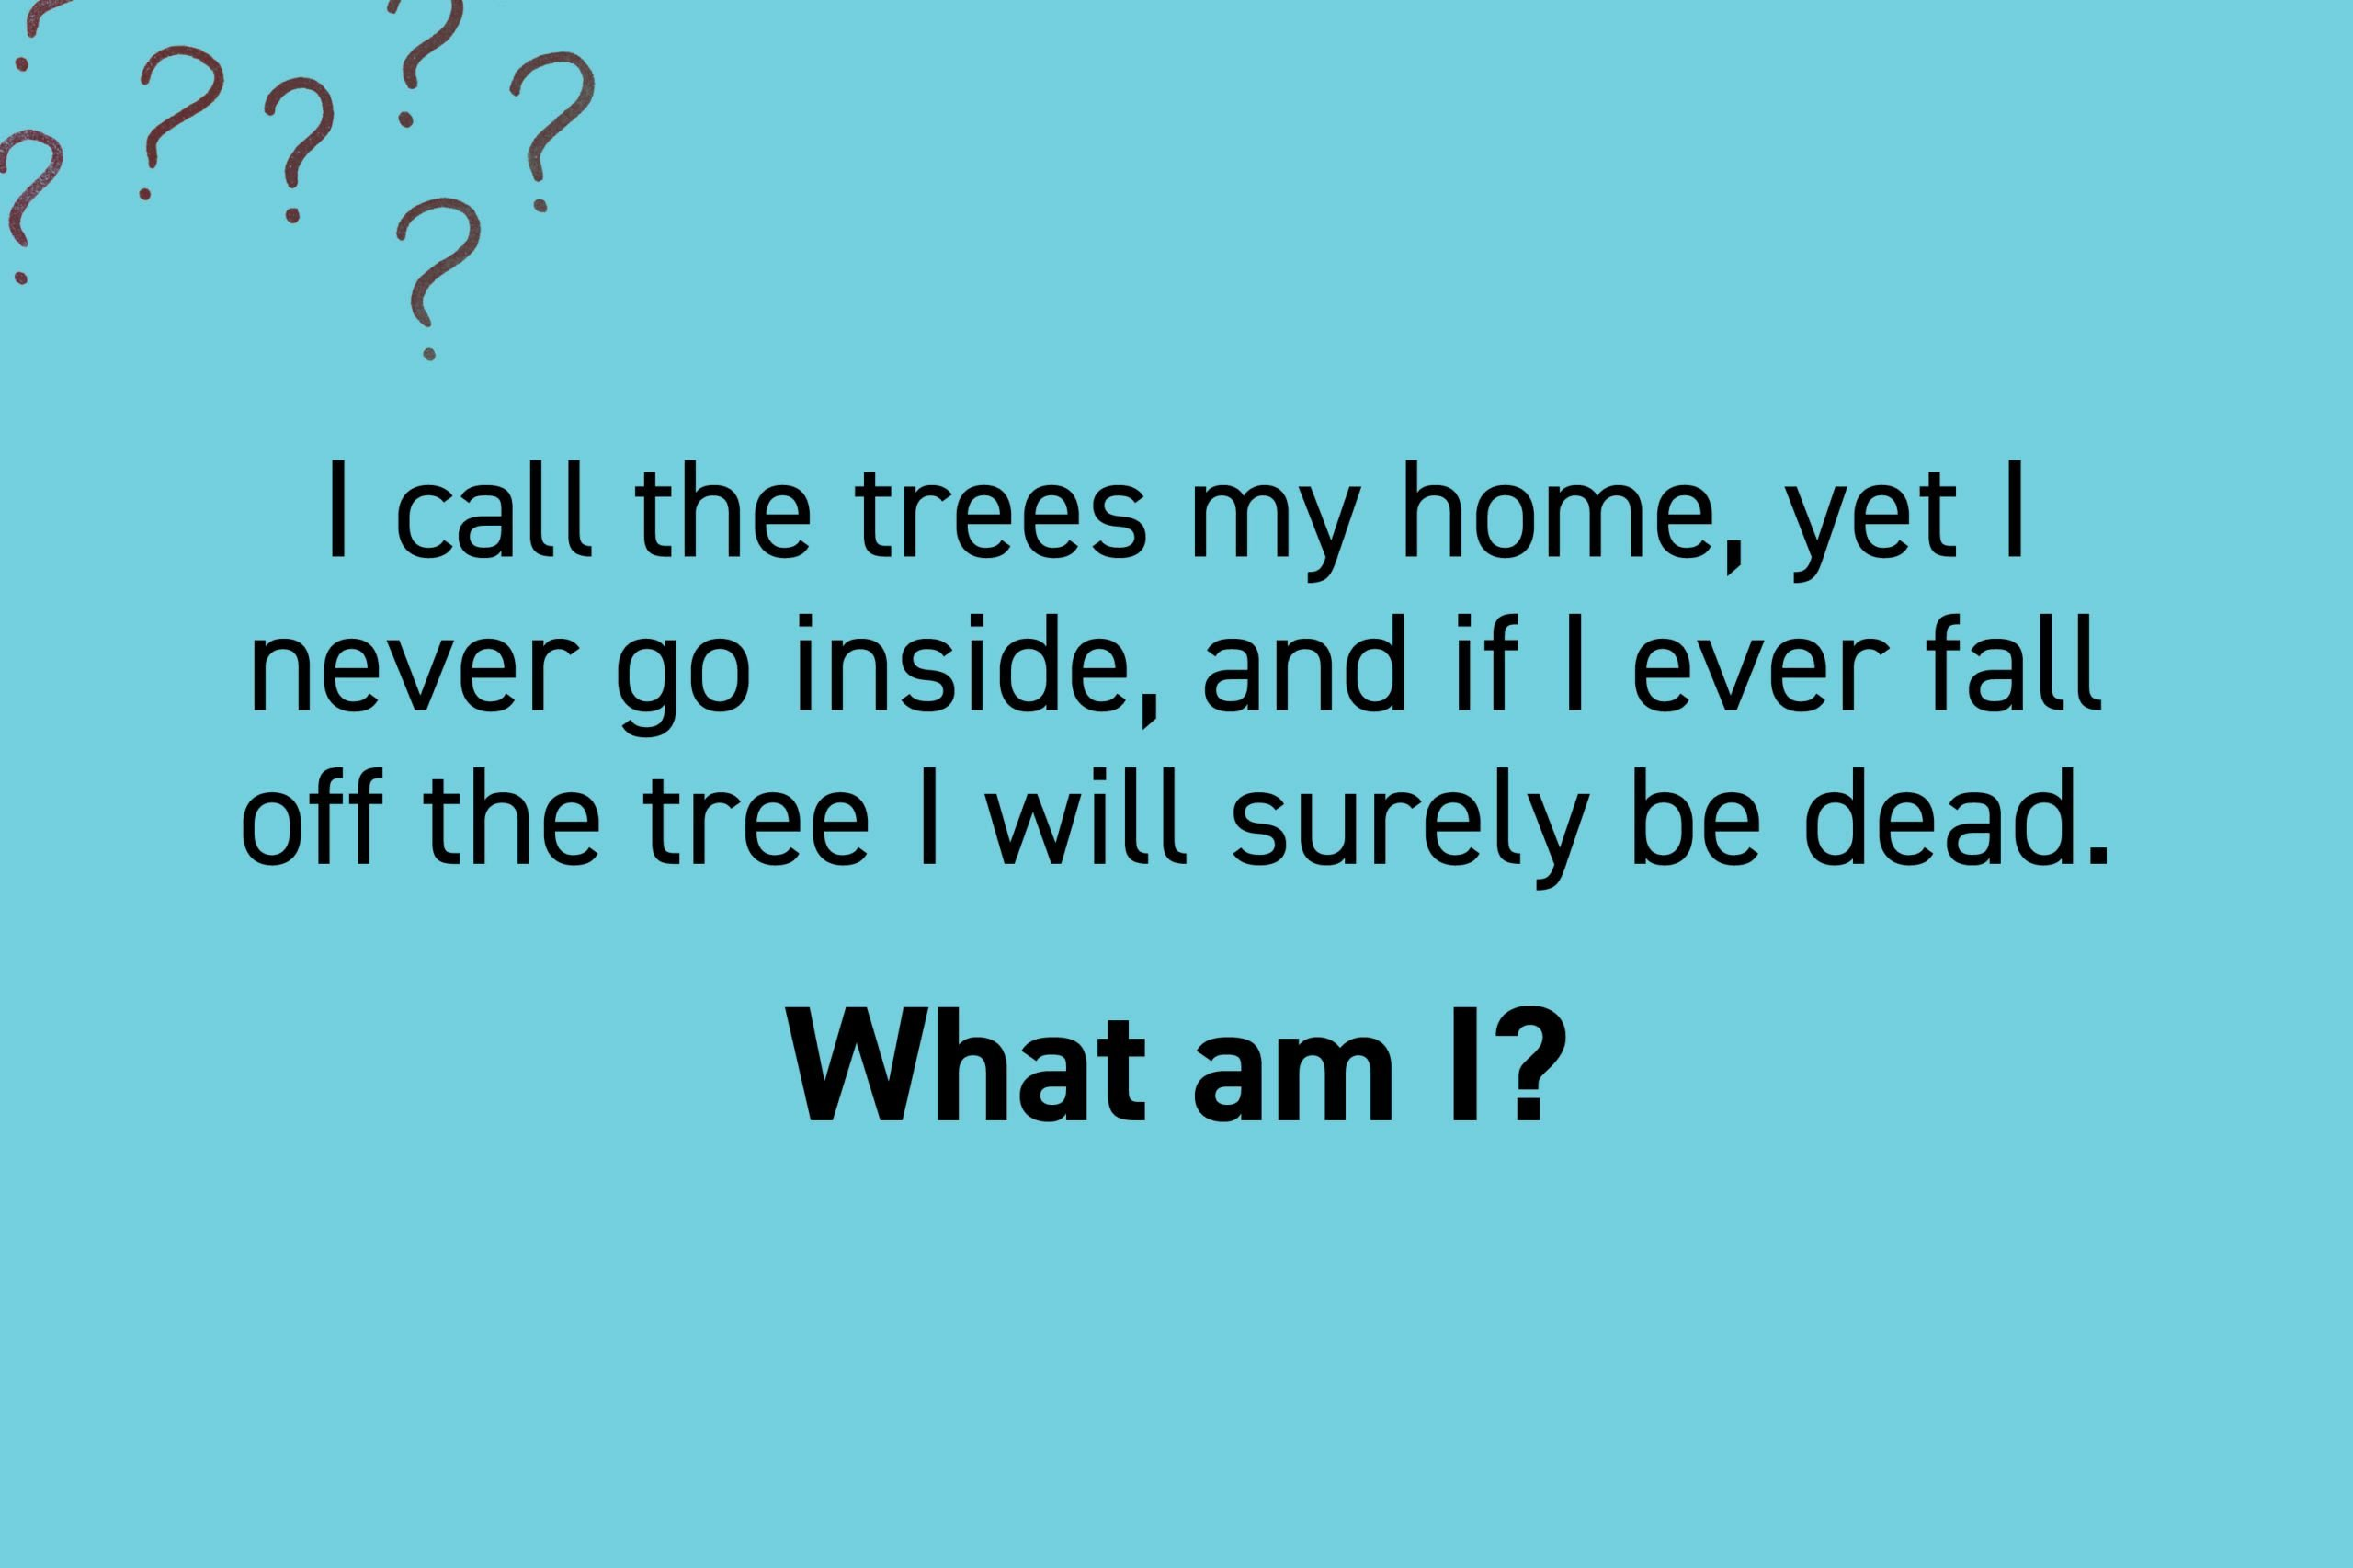 I call the trees my home, yet I never go inside, and if I ever fall off the tree I will surely be dead.